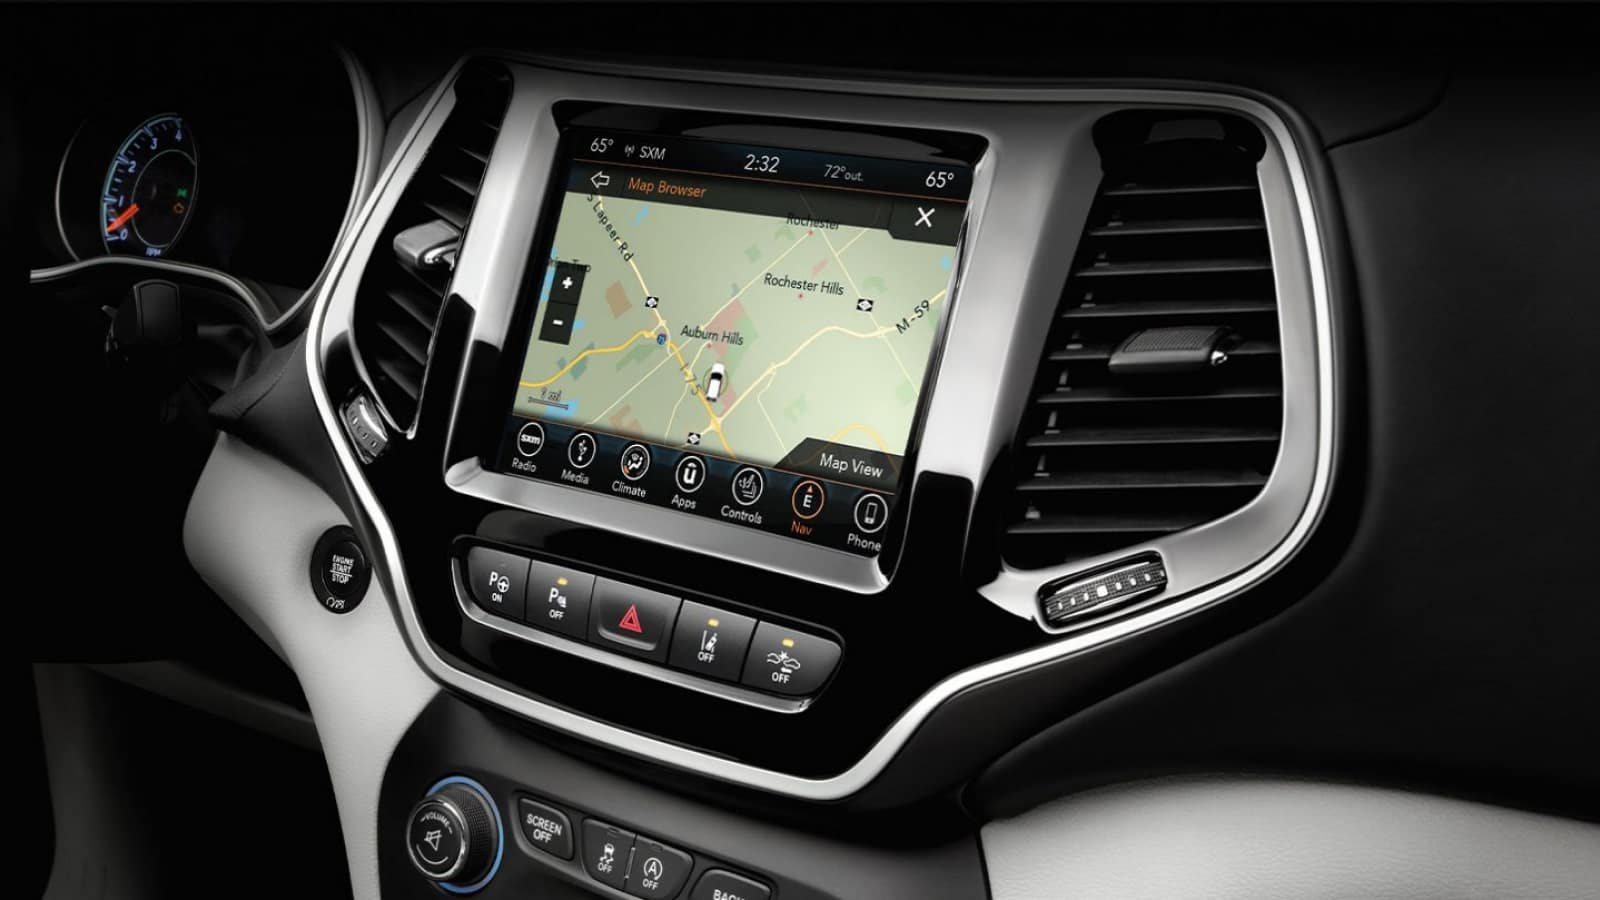 Touchscreen display inside the 2020 Jeep Cherokee